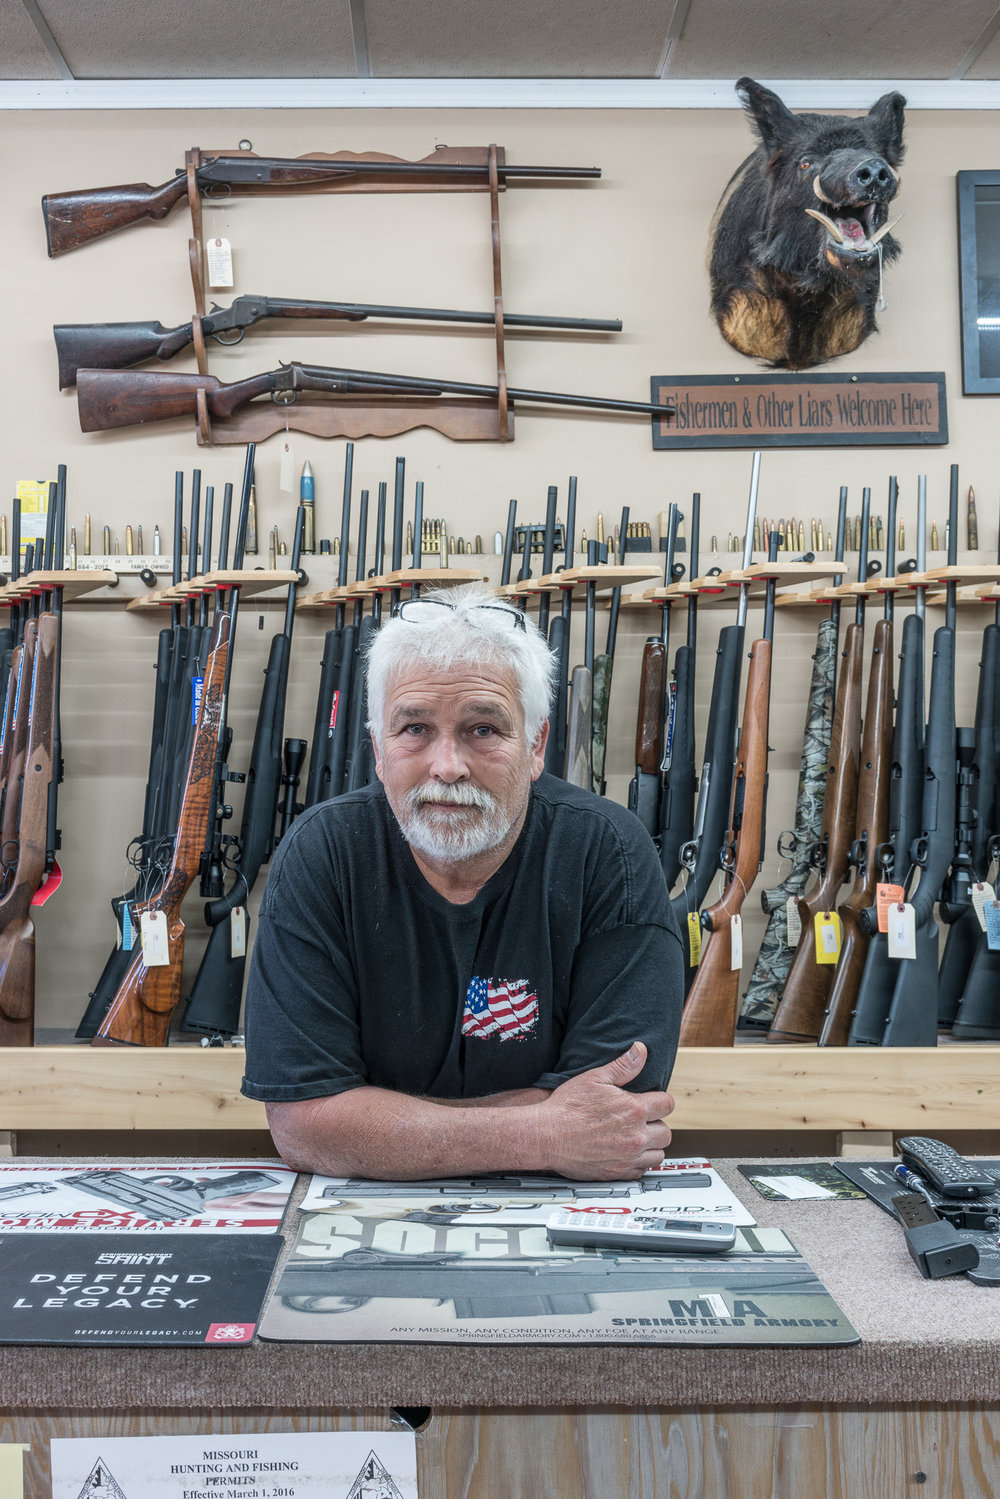 Clayton at the Gun Shop, De Soto, Missouri, 2017